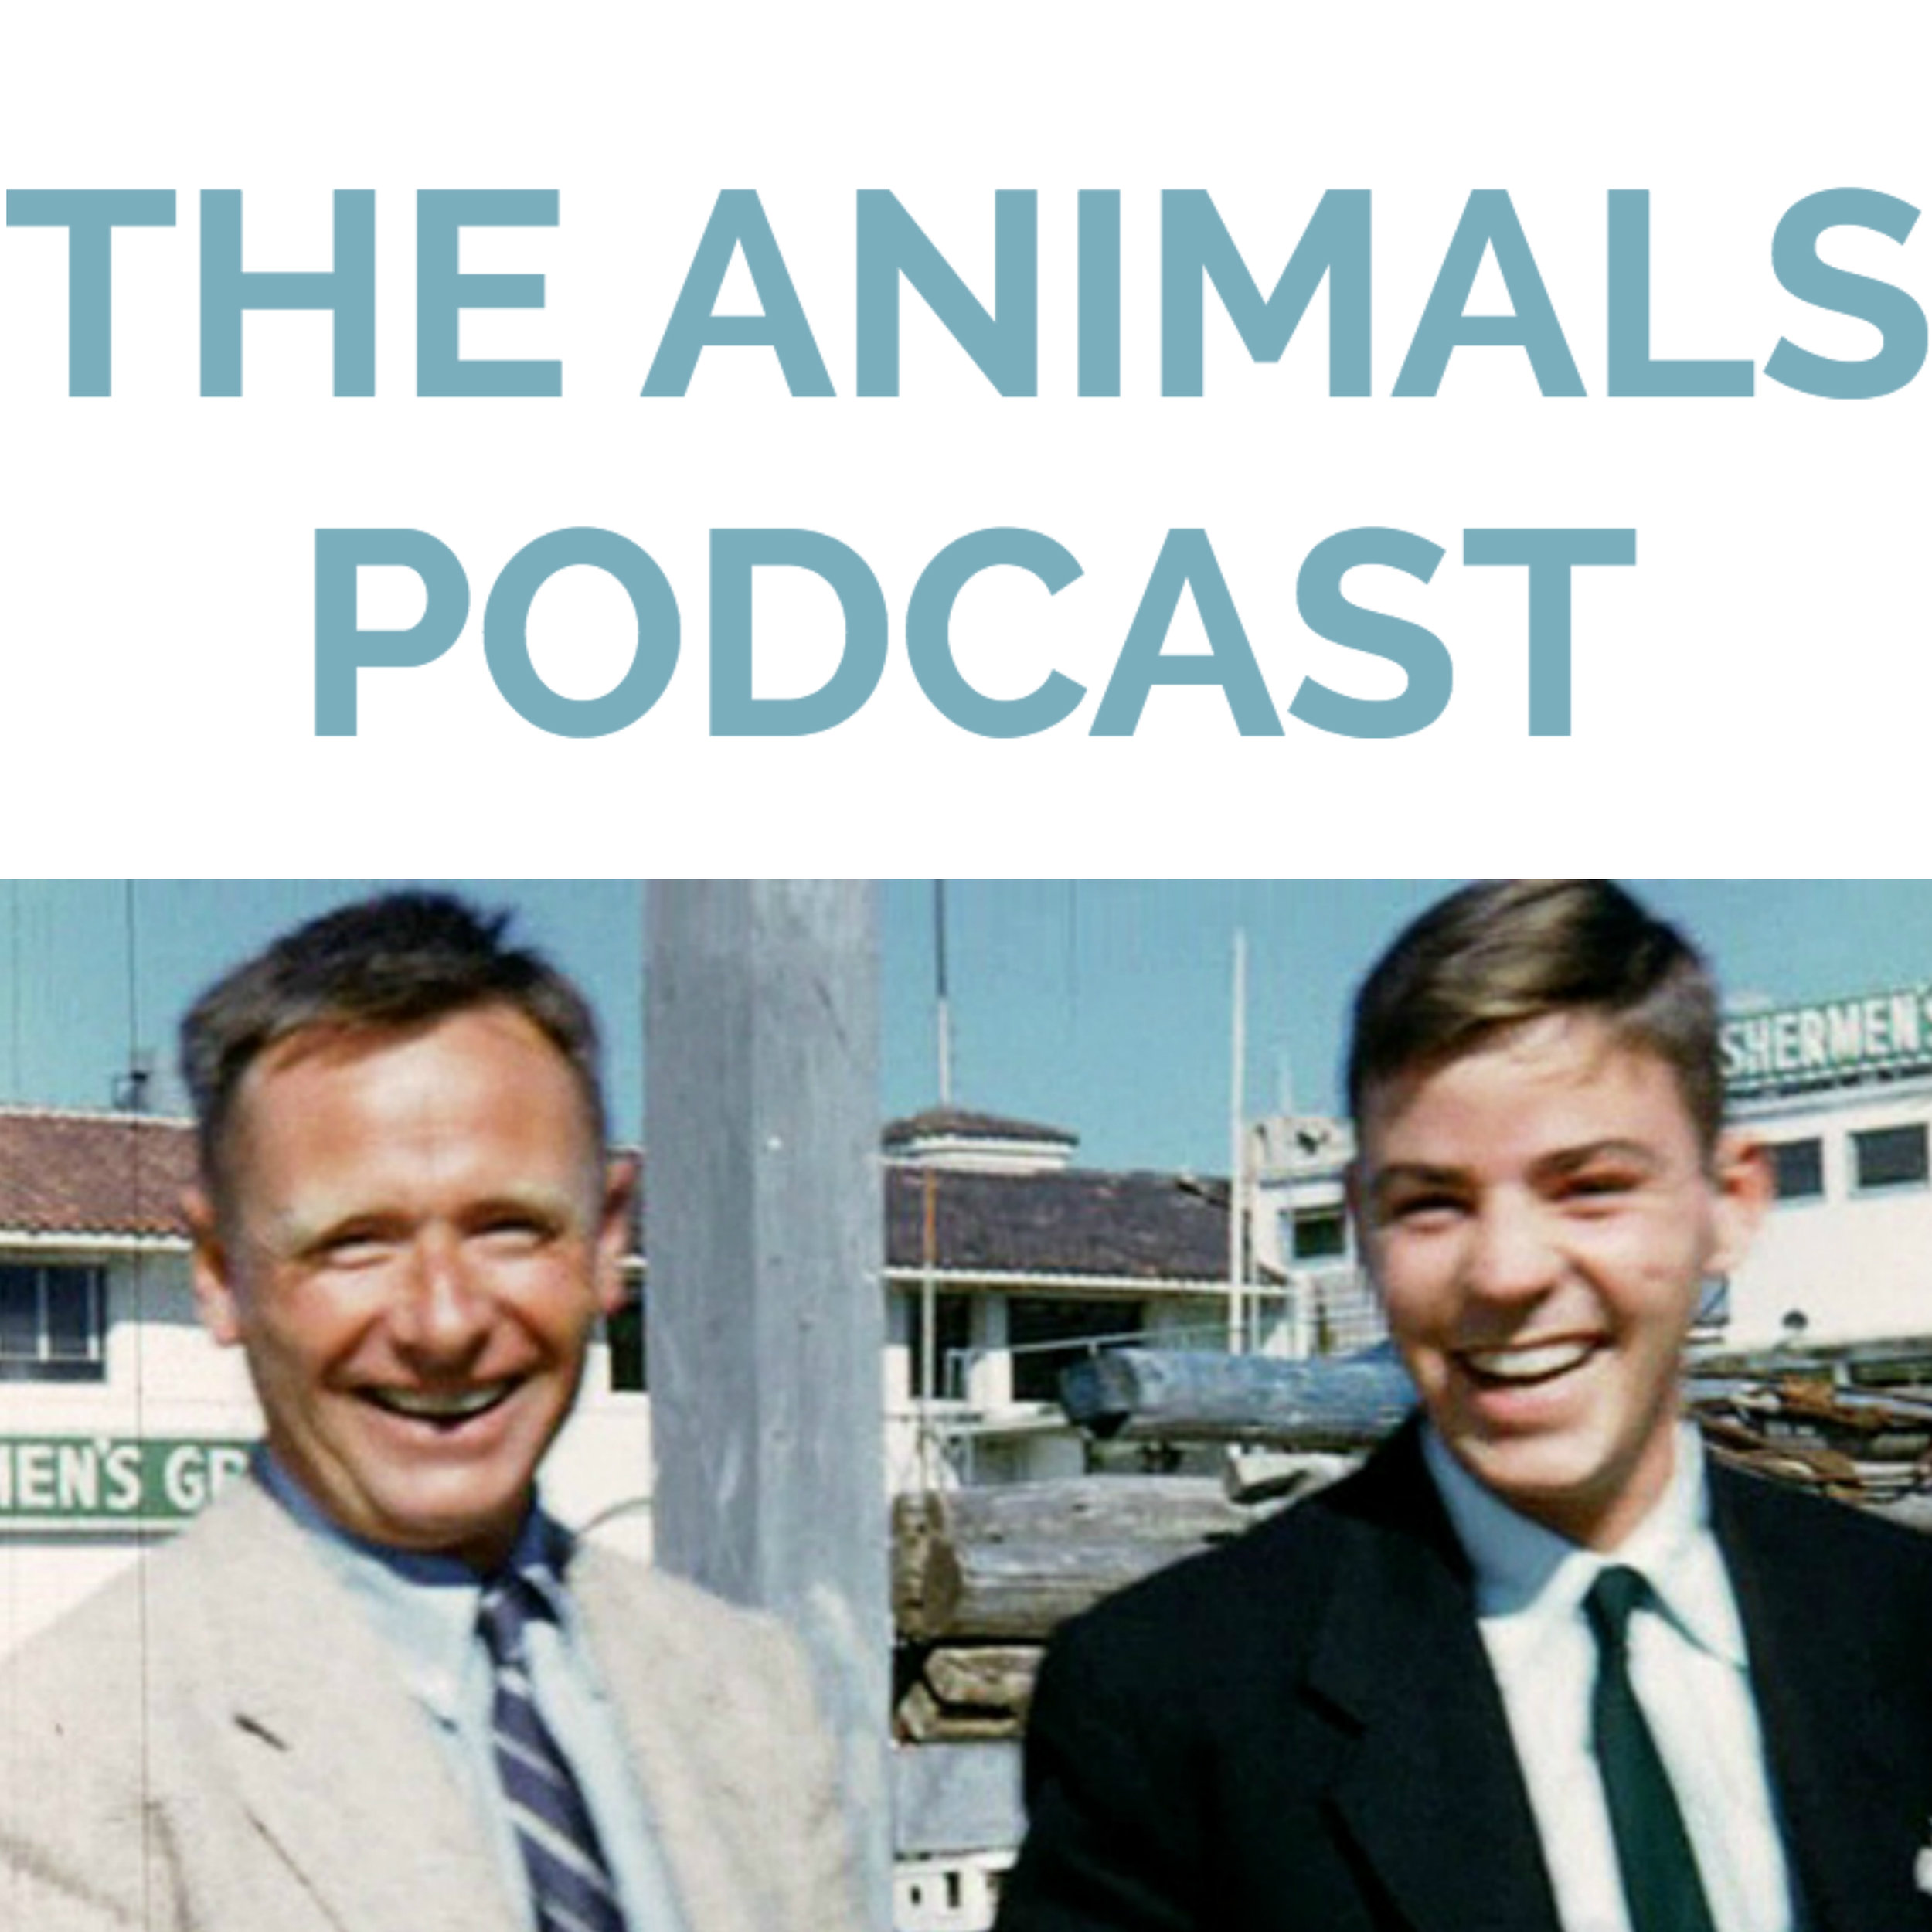 Episode One: Introduction to The Animals - After studying Christopher Isherwood for more than twenty years, Katherine Bucknell receives a package from Don Bachardy—stuffed with unpublished love letters. She ushers us back half a century into the private world of The Animals, Chris and Don, as they live, work, and travel, seldom apart, for seven years. When Don leaves their Santa Monica home to study at the Slade School of Fine Art in London, the separation is excruciating.